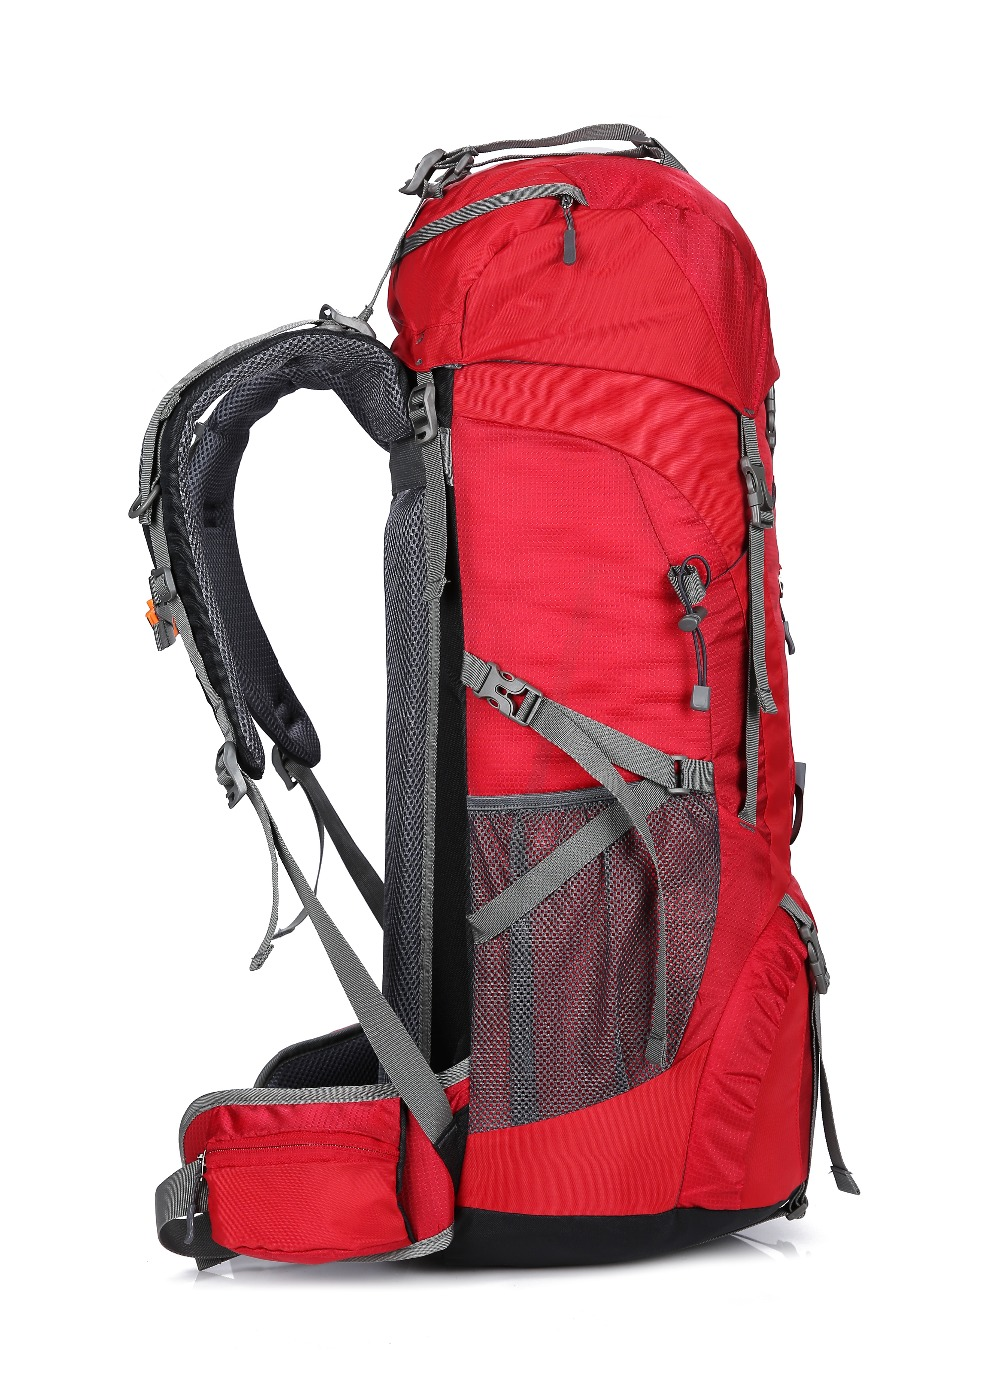 623986a9f5ac 75L Large Capacity Hiking Backpack with Rain Cover Wateproof Wear-resistant  Outdoor Bag Professional Camping Travel Backpack